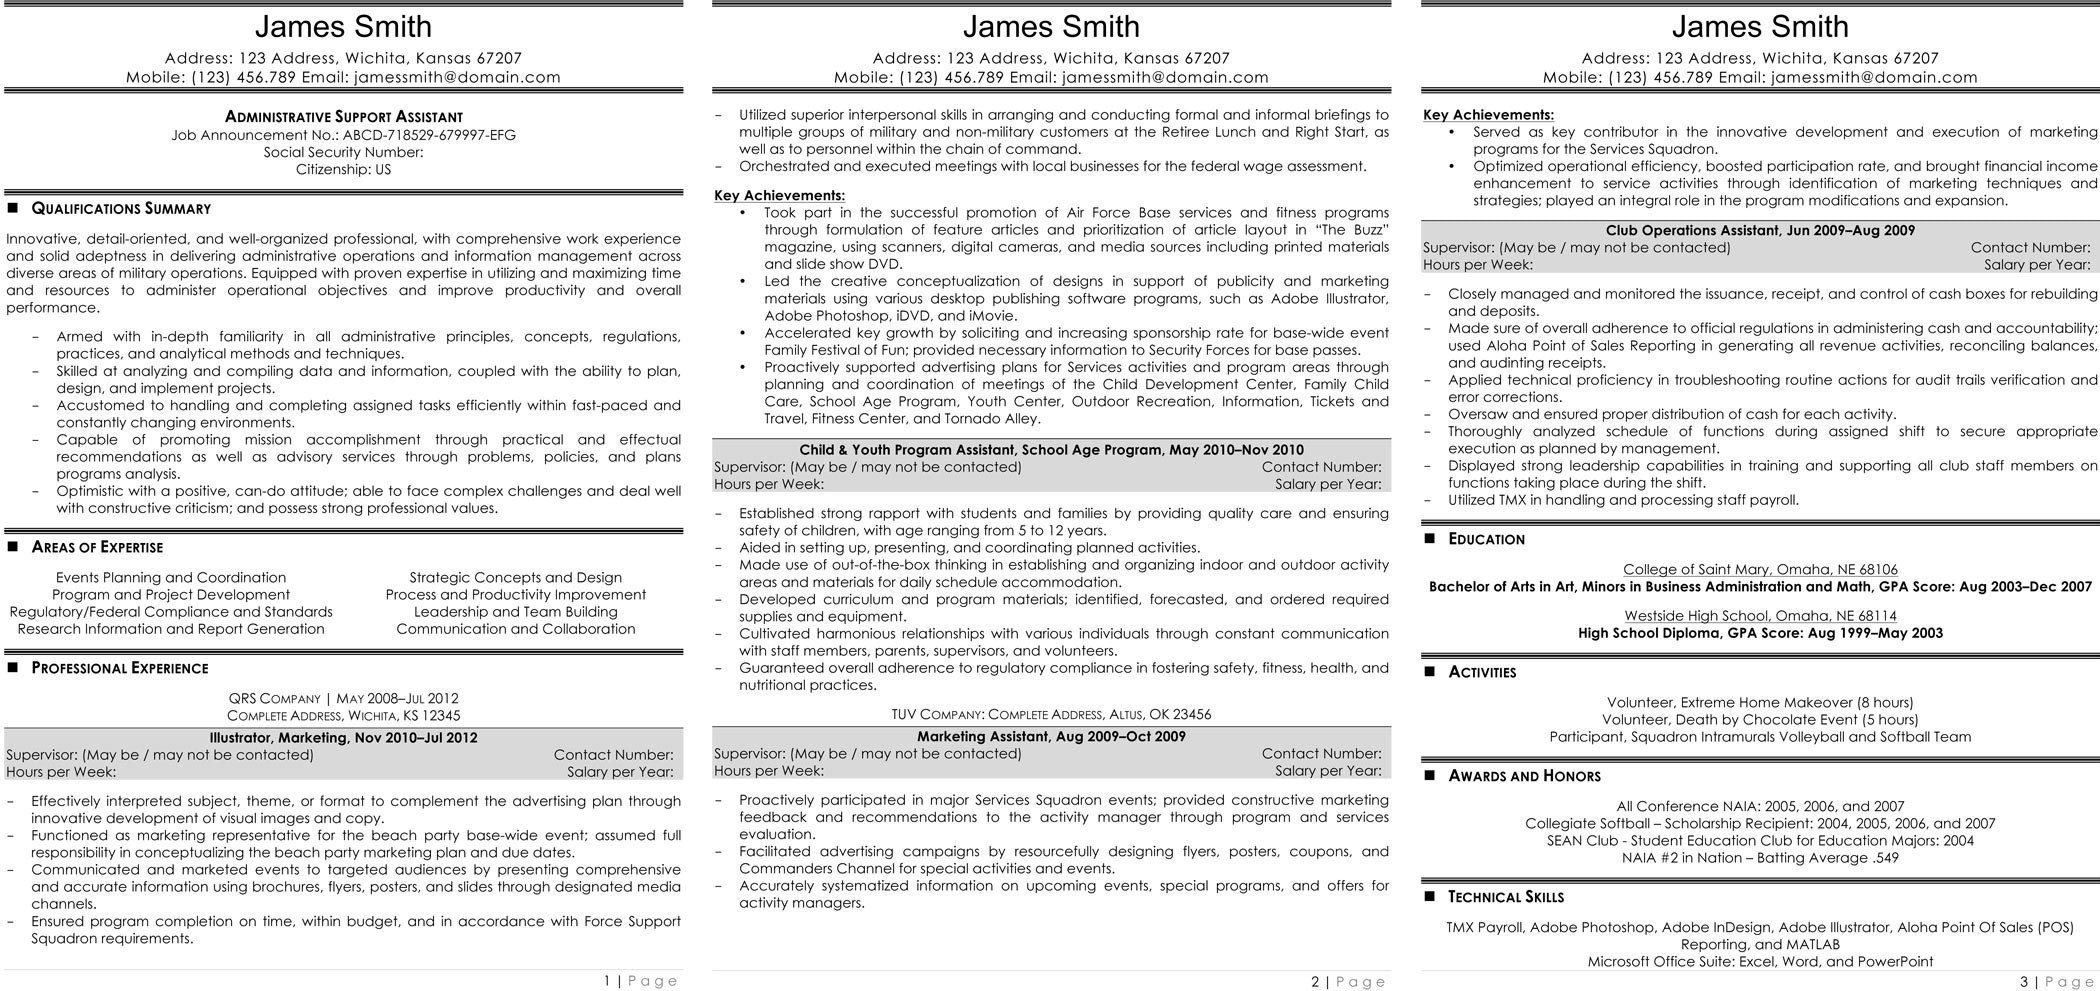 Vp Resume Template - Executive assistant Resume Fresh Resume Template Executive assistant